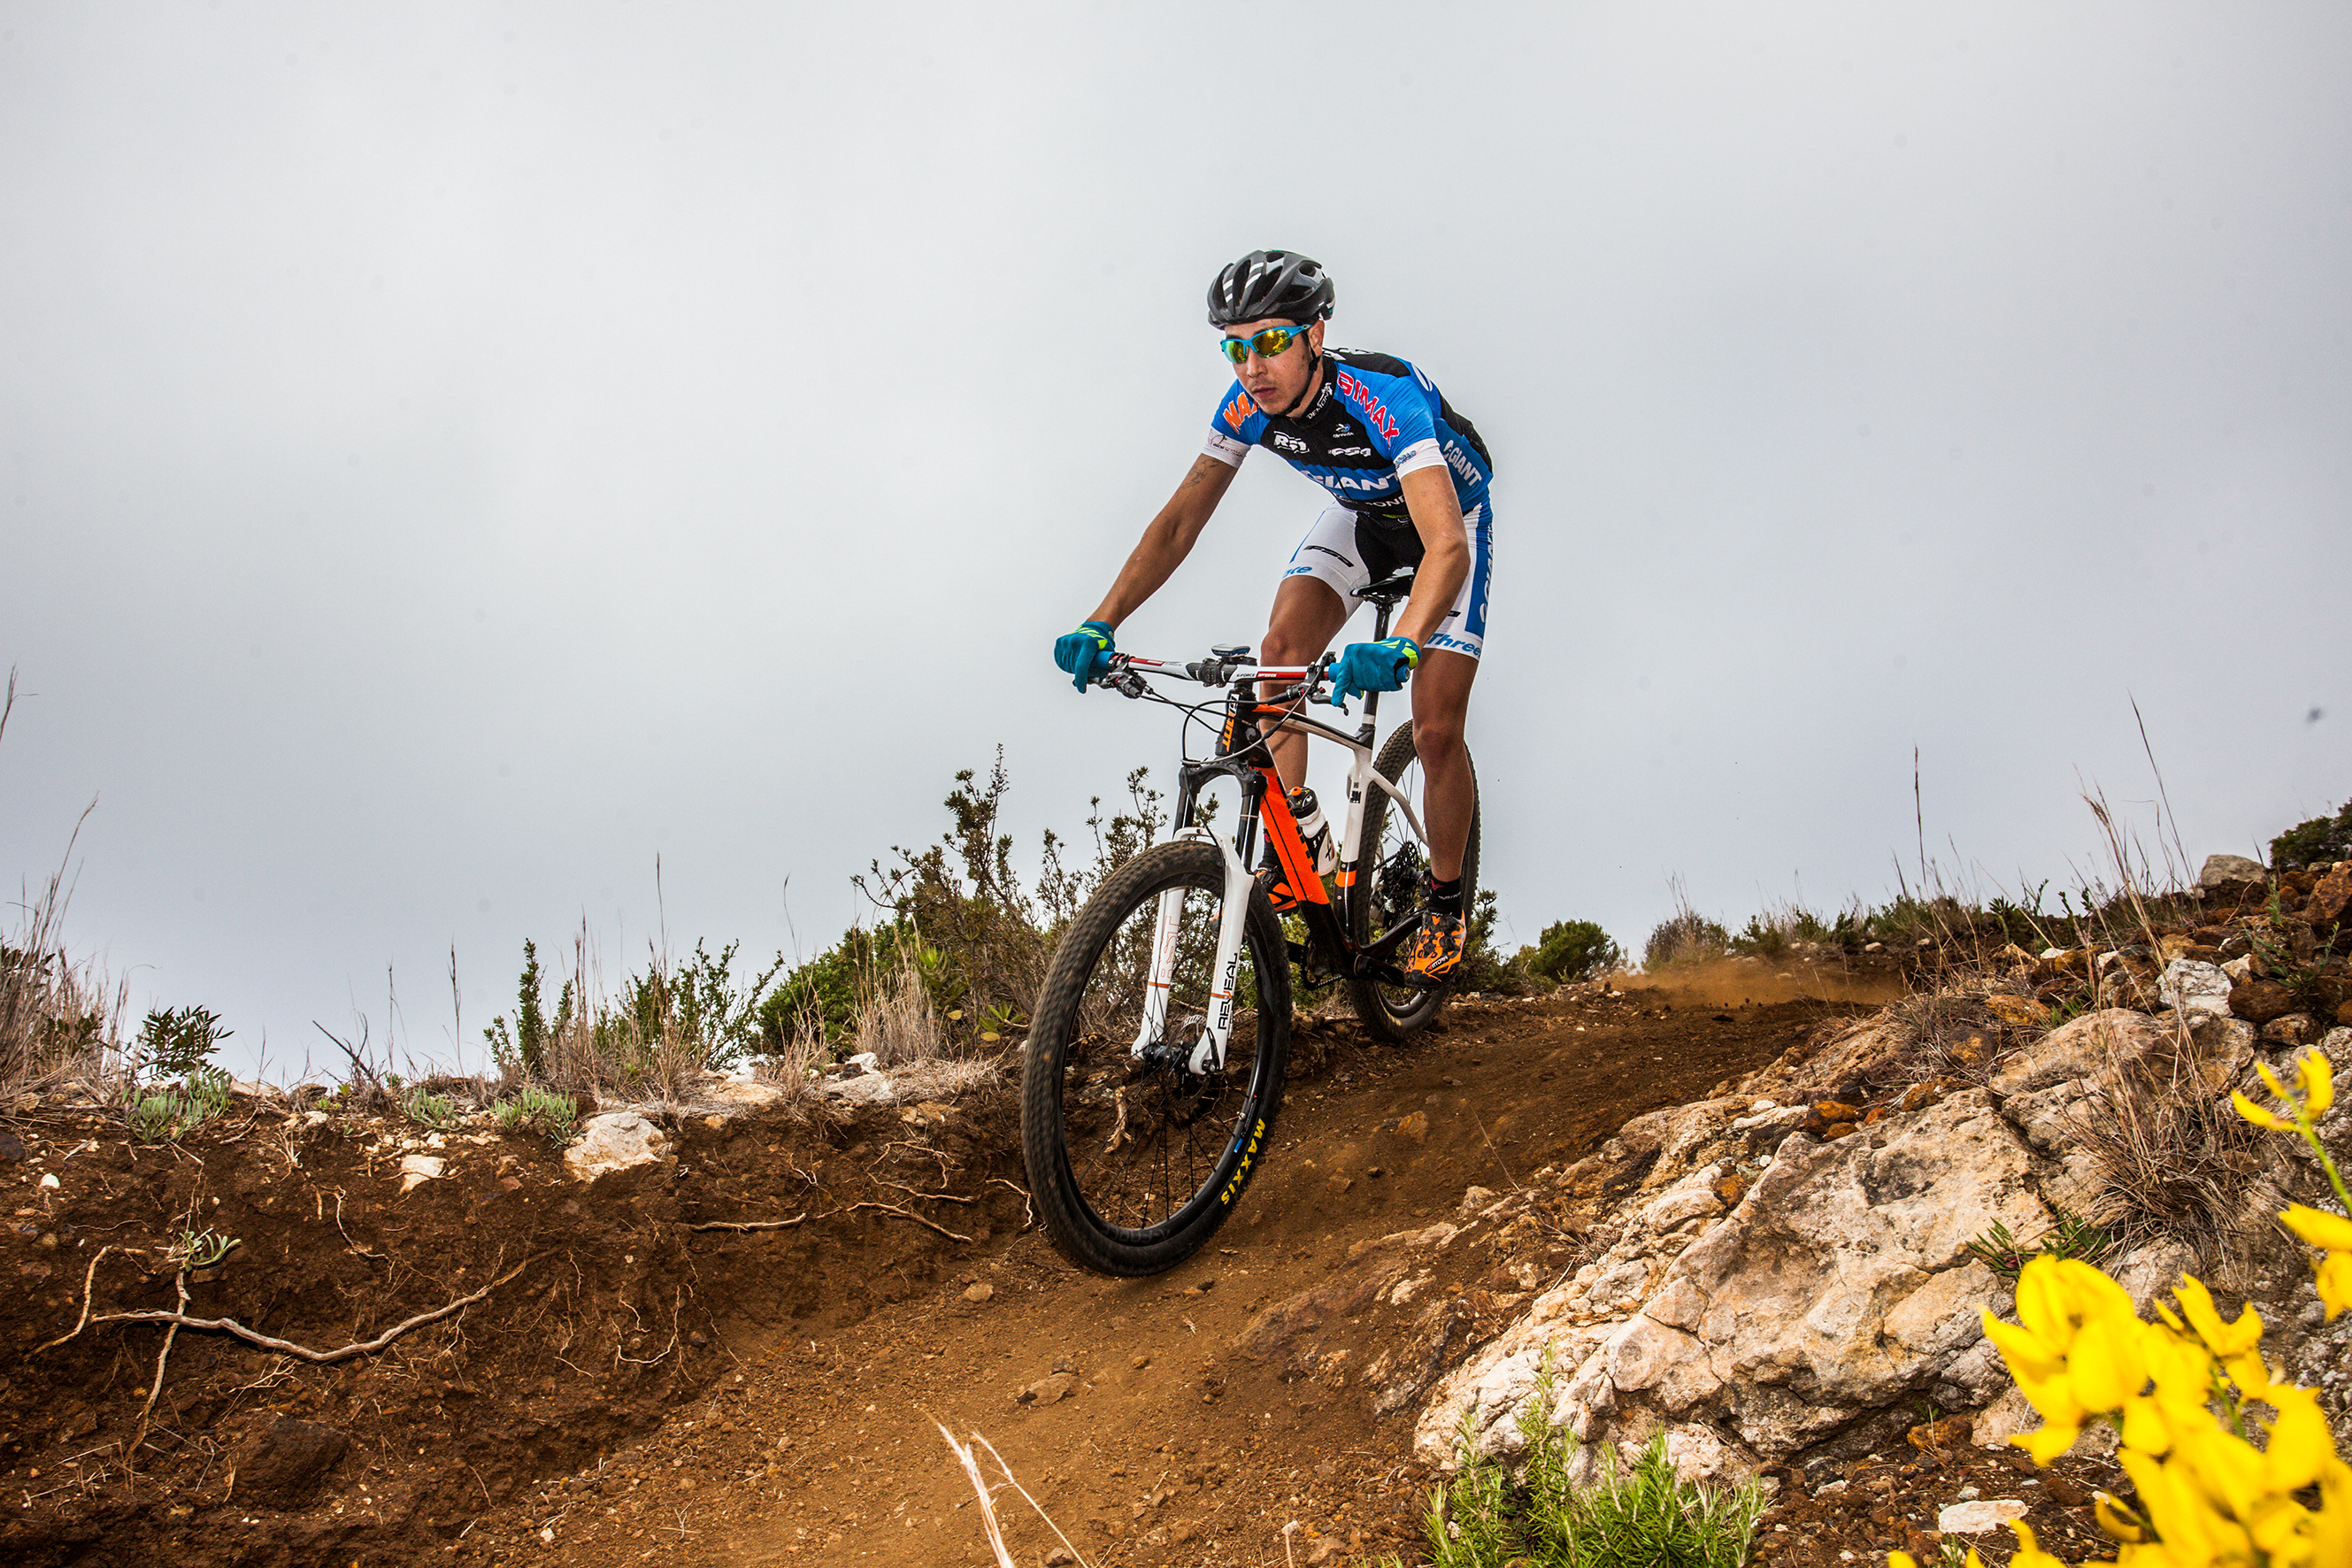 a46e5e126e5 8 TIPS FOR BUYING YOUR FIRST MOUNTAIN BIKE | Full Speed Ahead